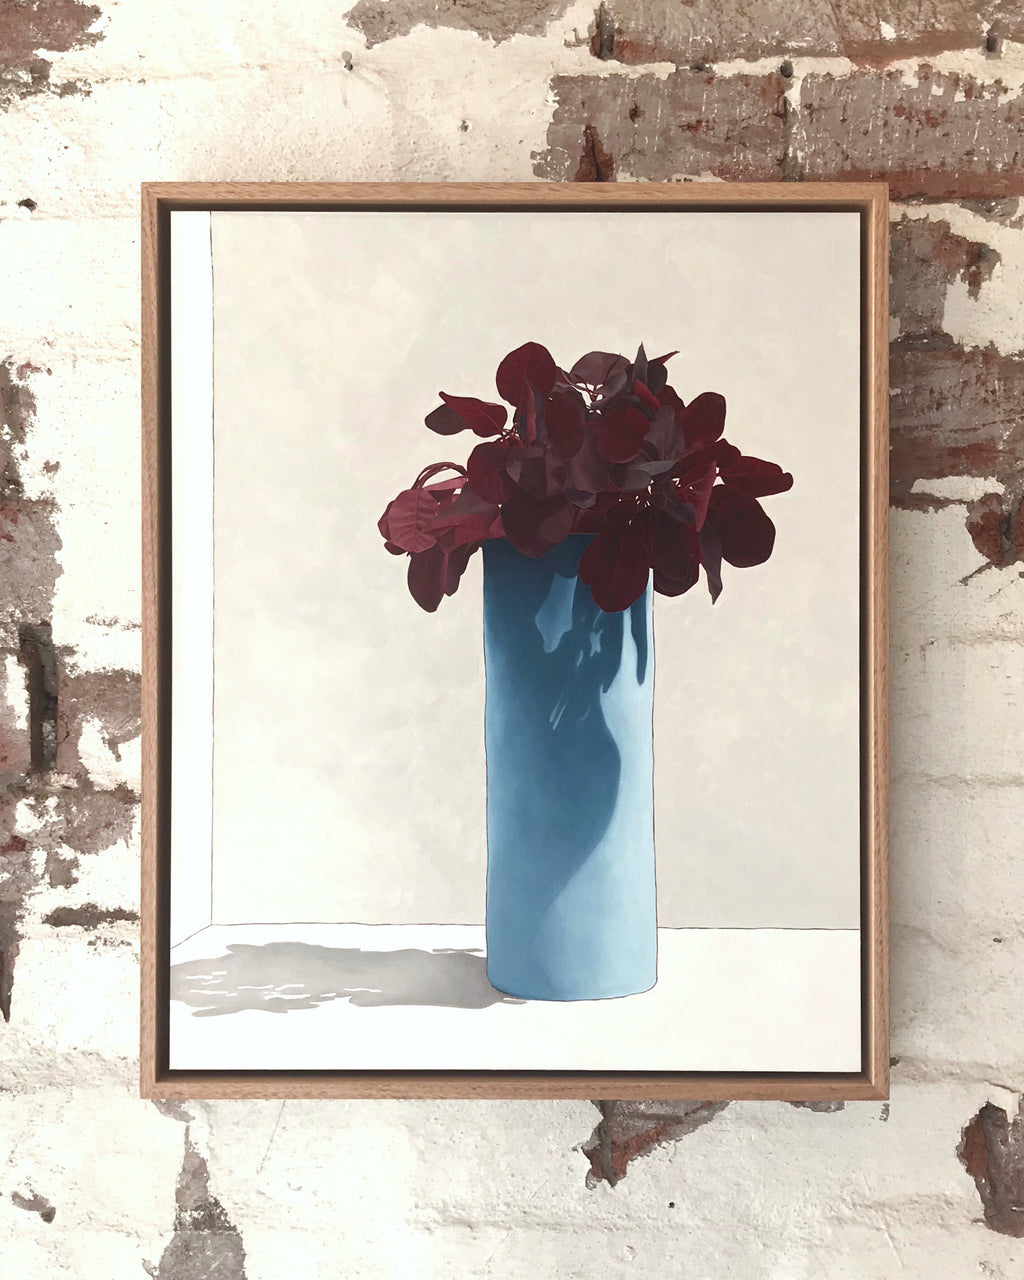 Red Leaves With Blue Vase - Sarah Hassett